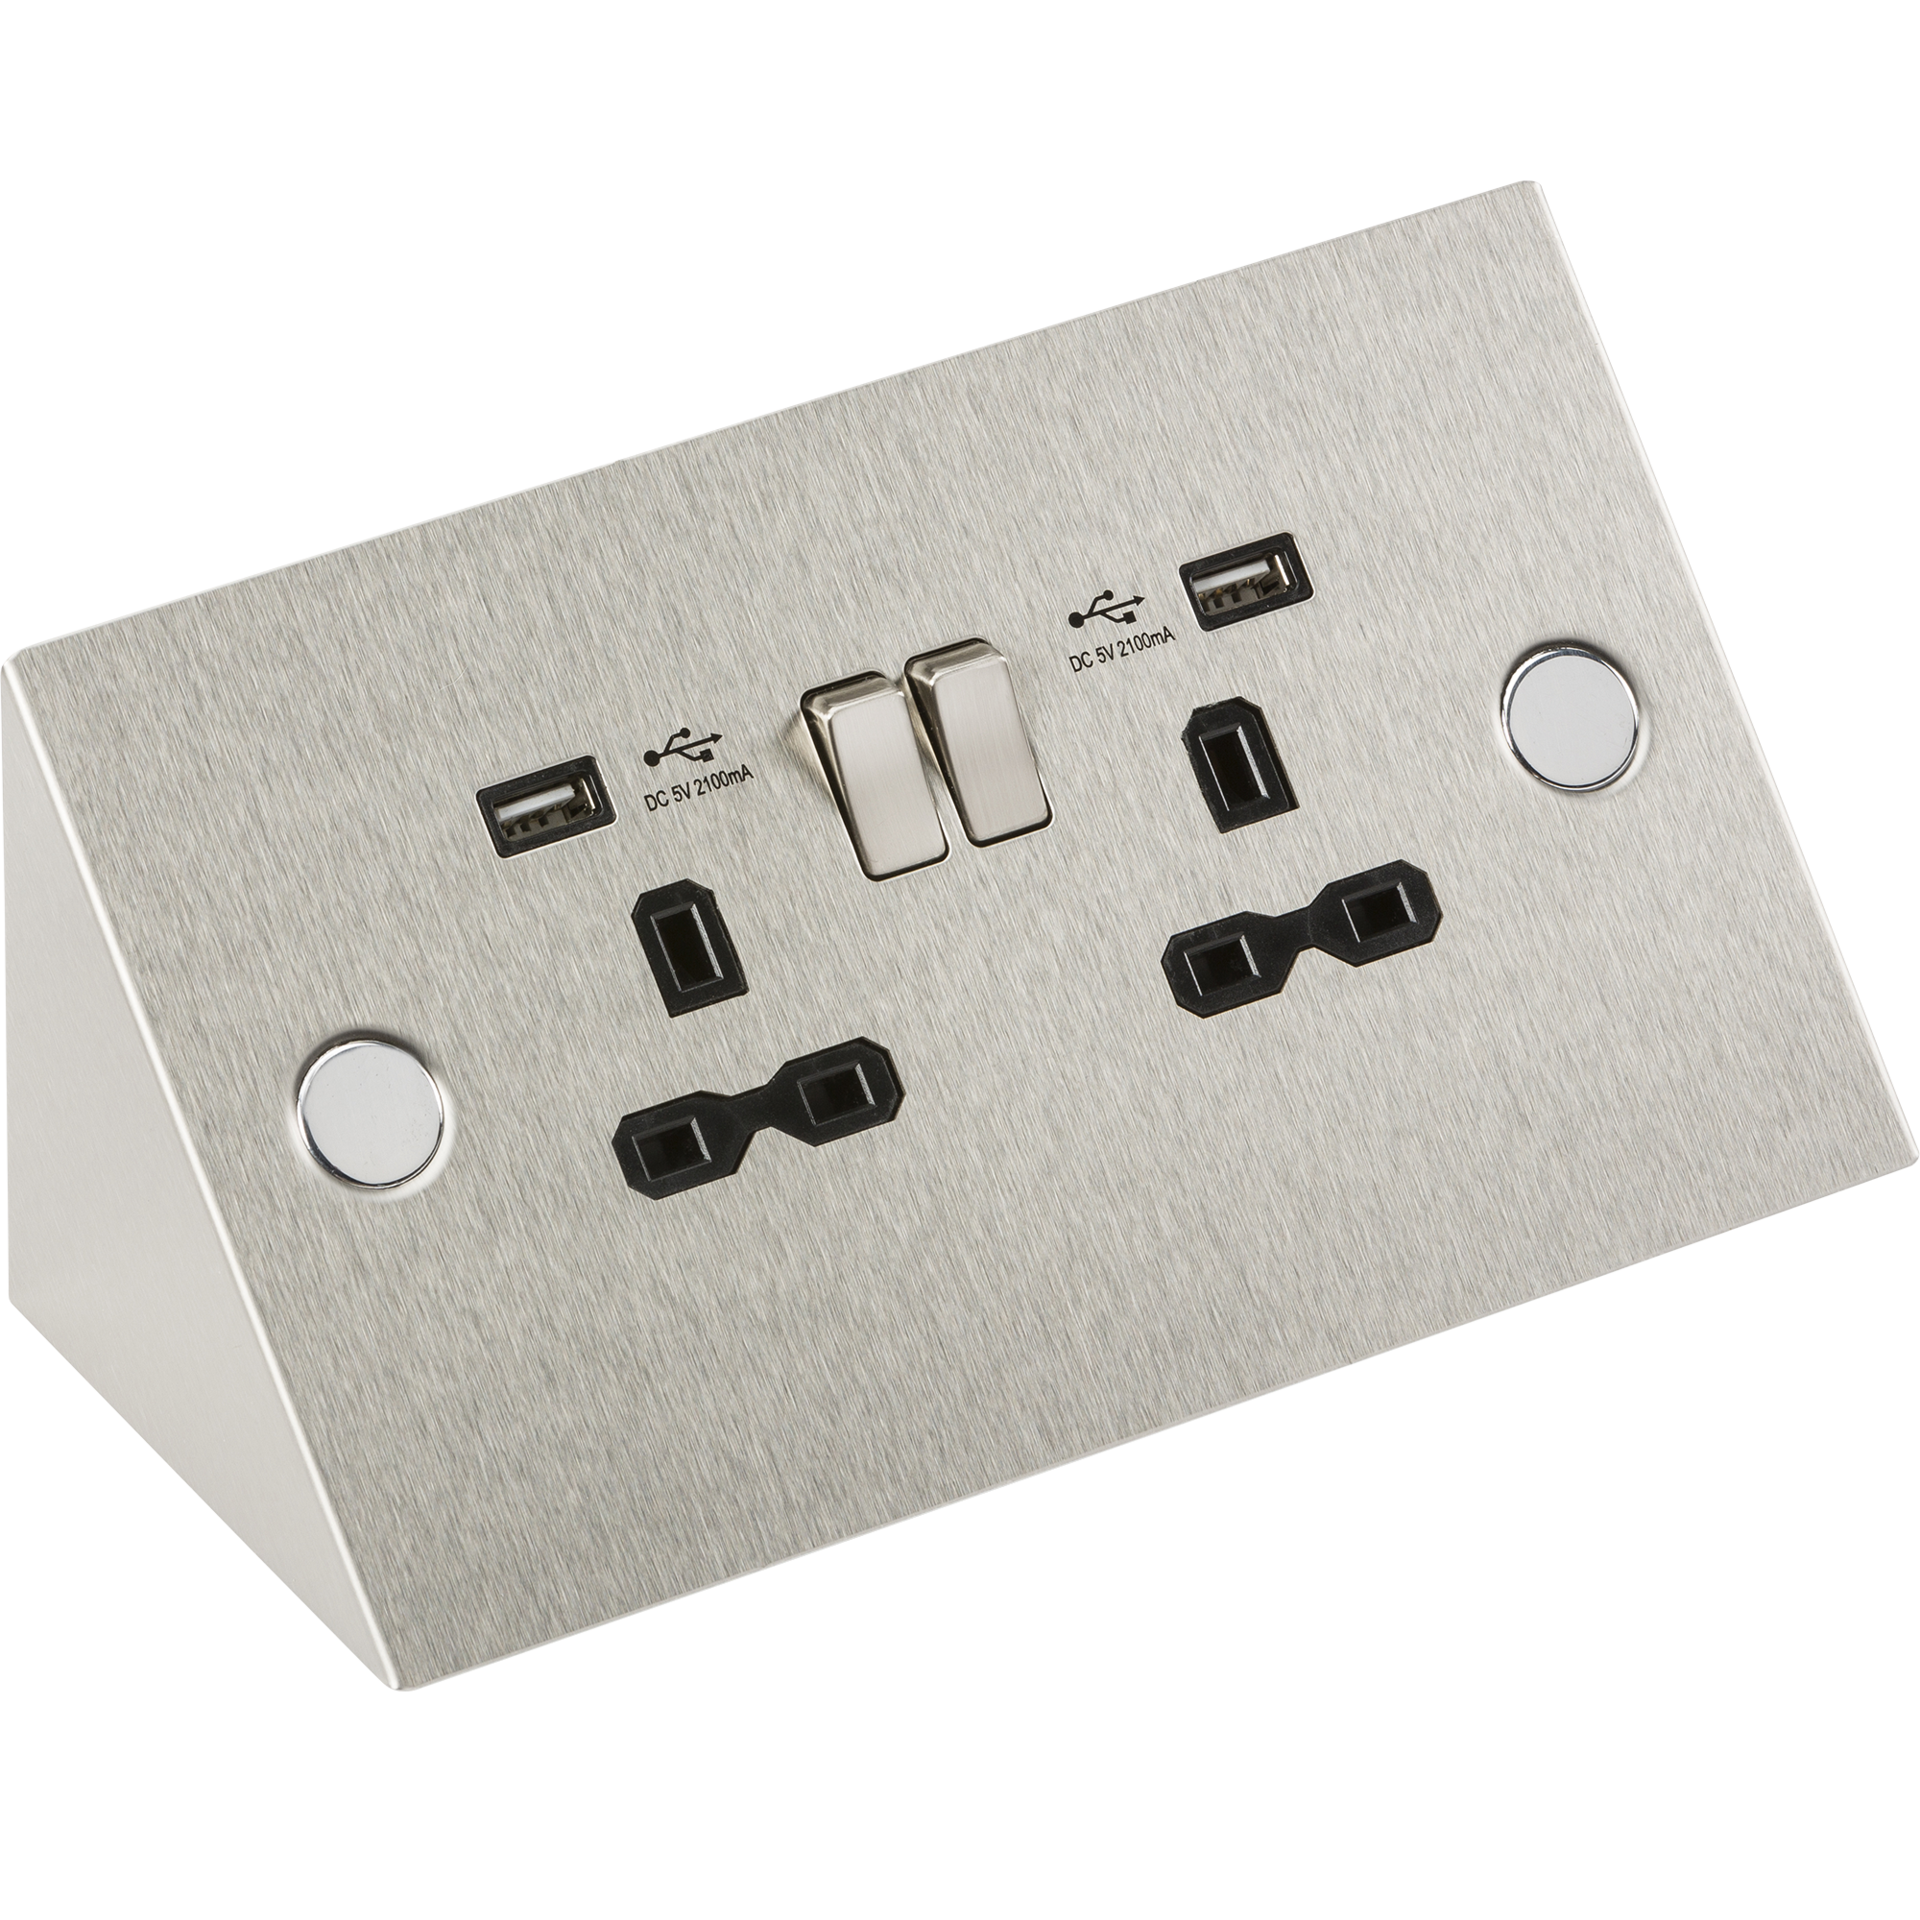 13A 2G mounting socket with dual USB charger 5V DC 2.1A (shared)